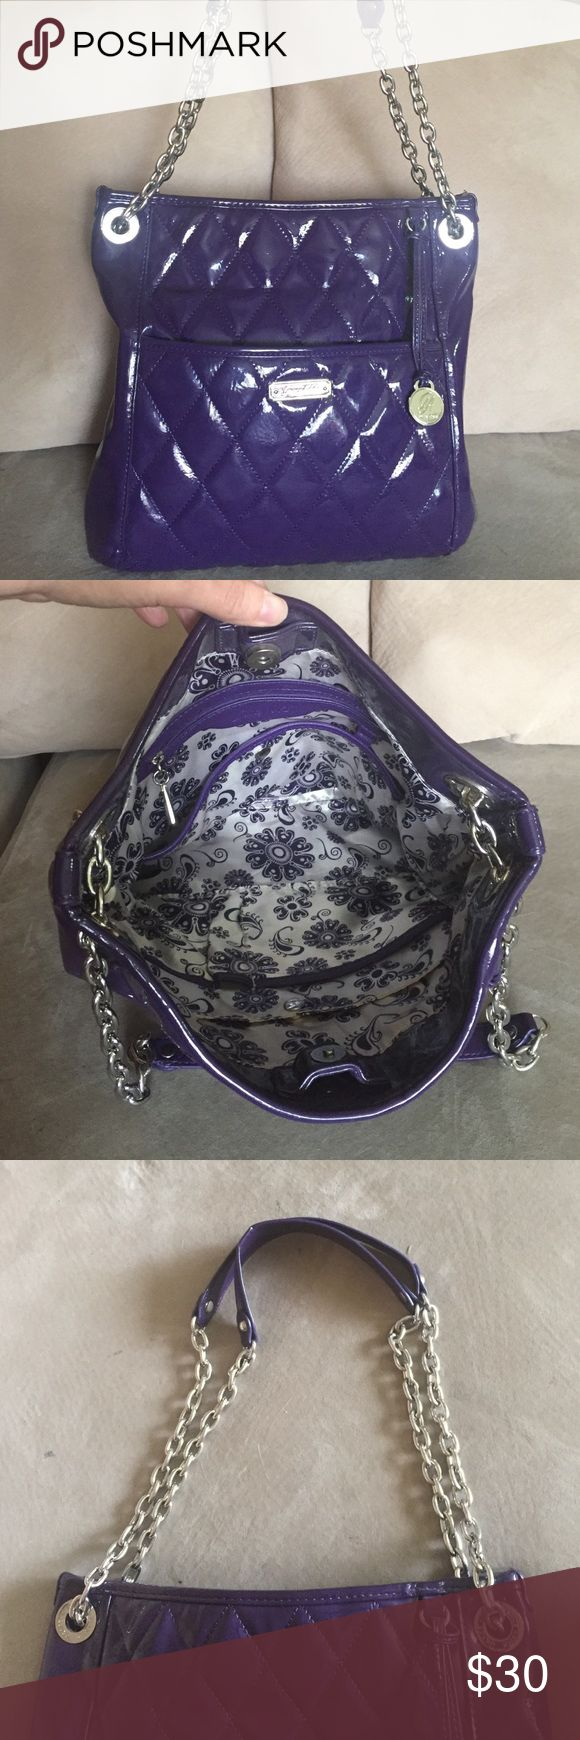 Grace Adele Grape Bag/Crossbody Like new over shoulder purse that can easily be used as a cross body. Grace Adele ALEX in grape. Grace Adele Bags Crossbody Bags